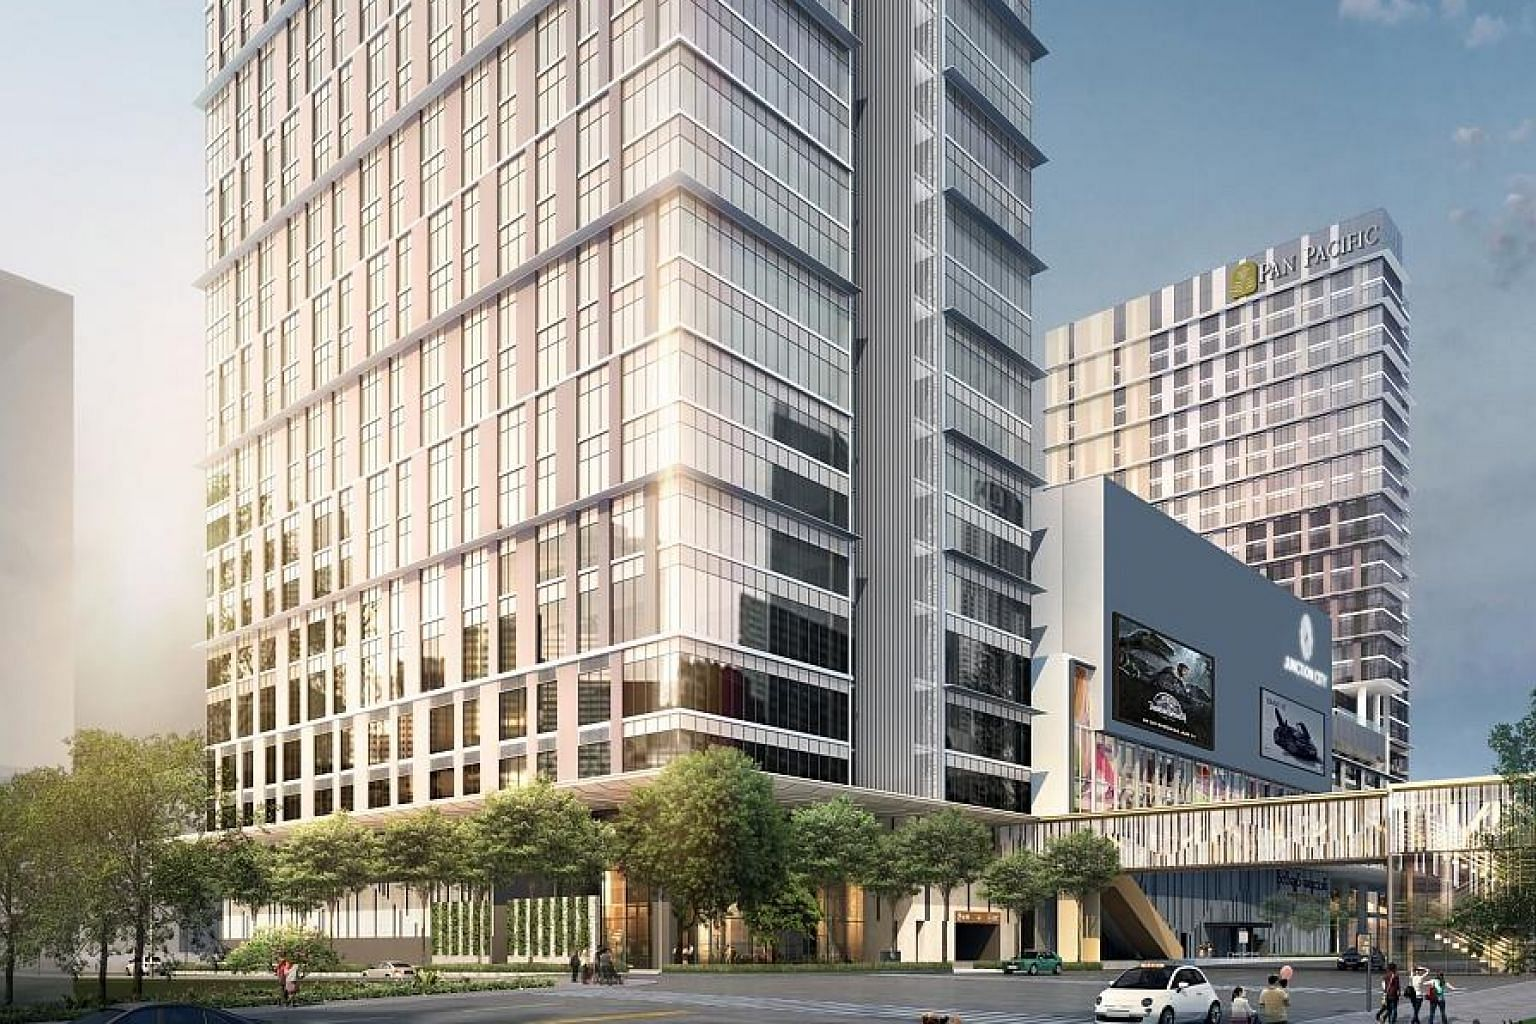 The 23-storey Junction City Tower - developed by Keppel Land and Myanmar's Shwe Taung Group - has Grade A office space with a net leasable area of about 33,400 sq m.